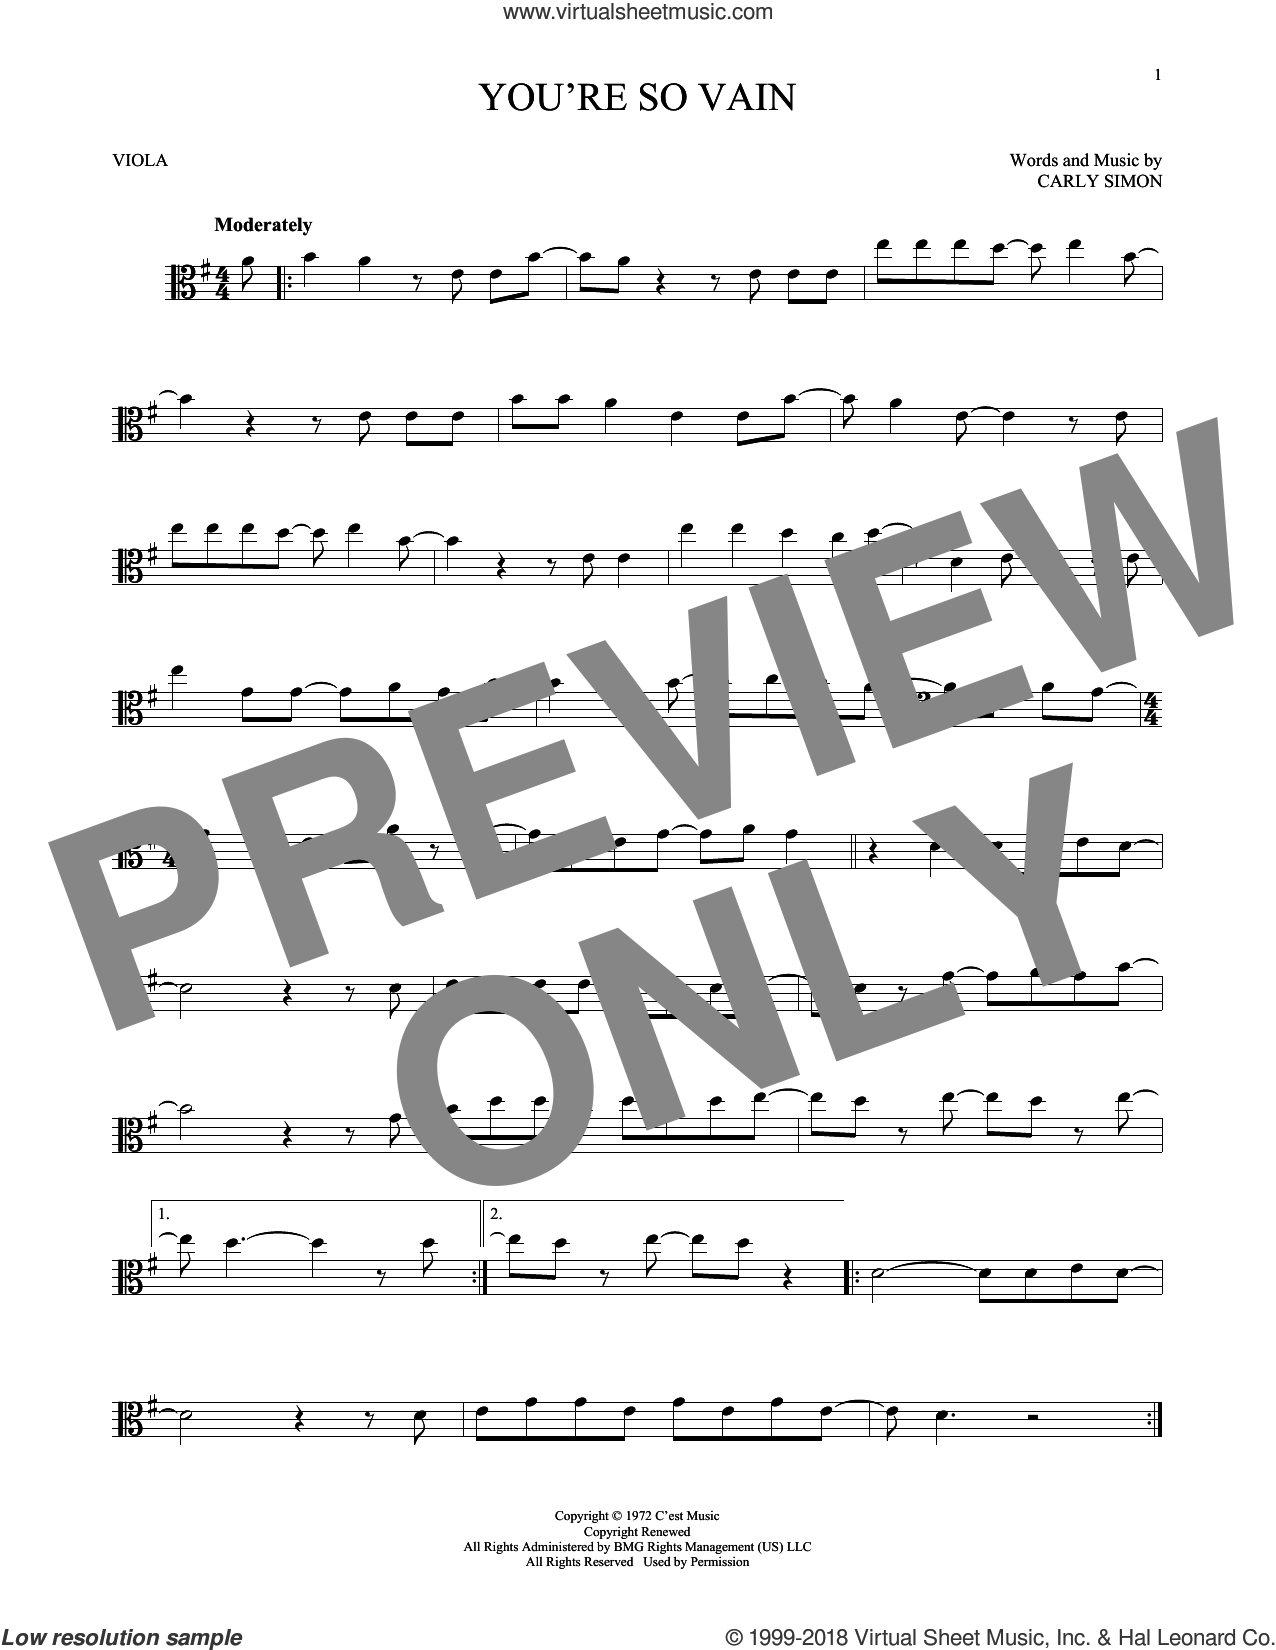 You're So Vain sheet music for viola solo by Carly Simon, intermediate skill level